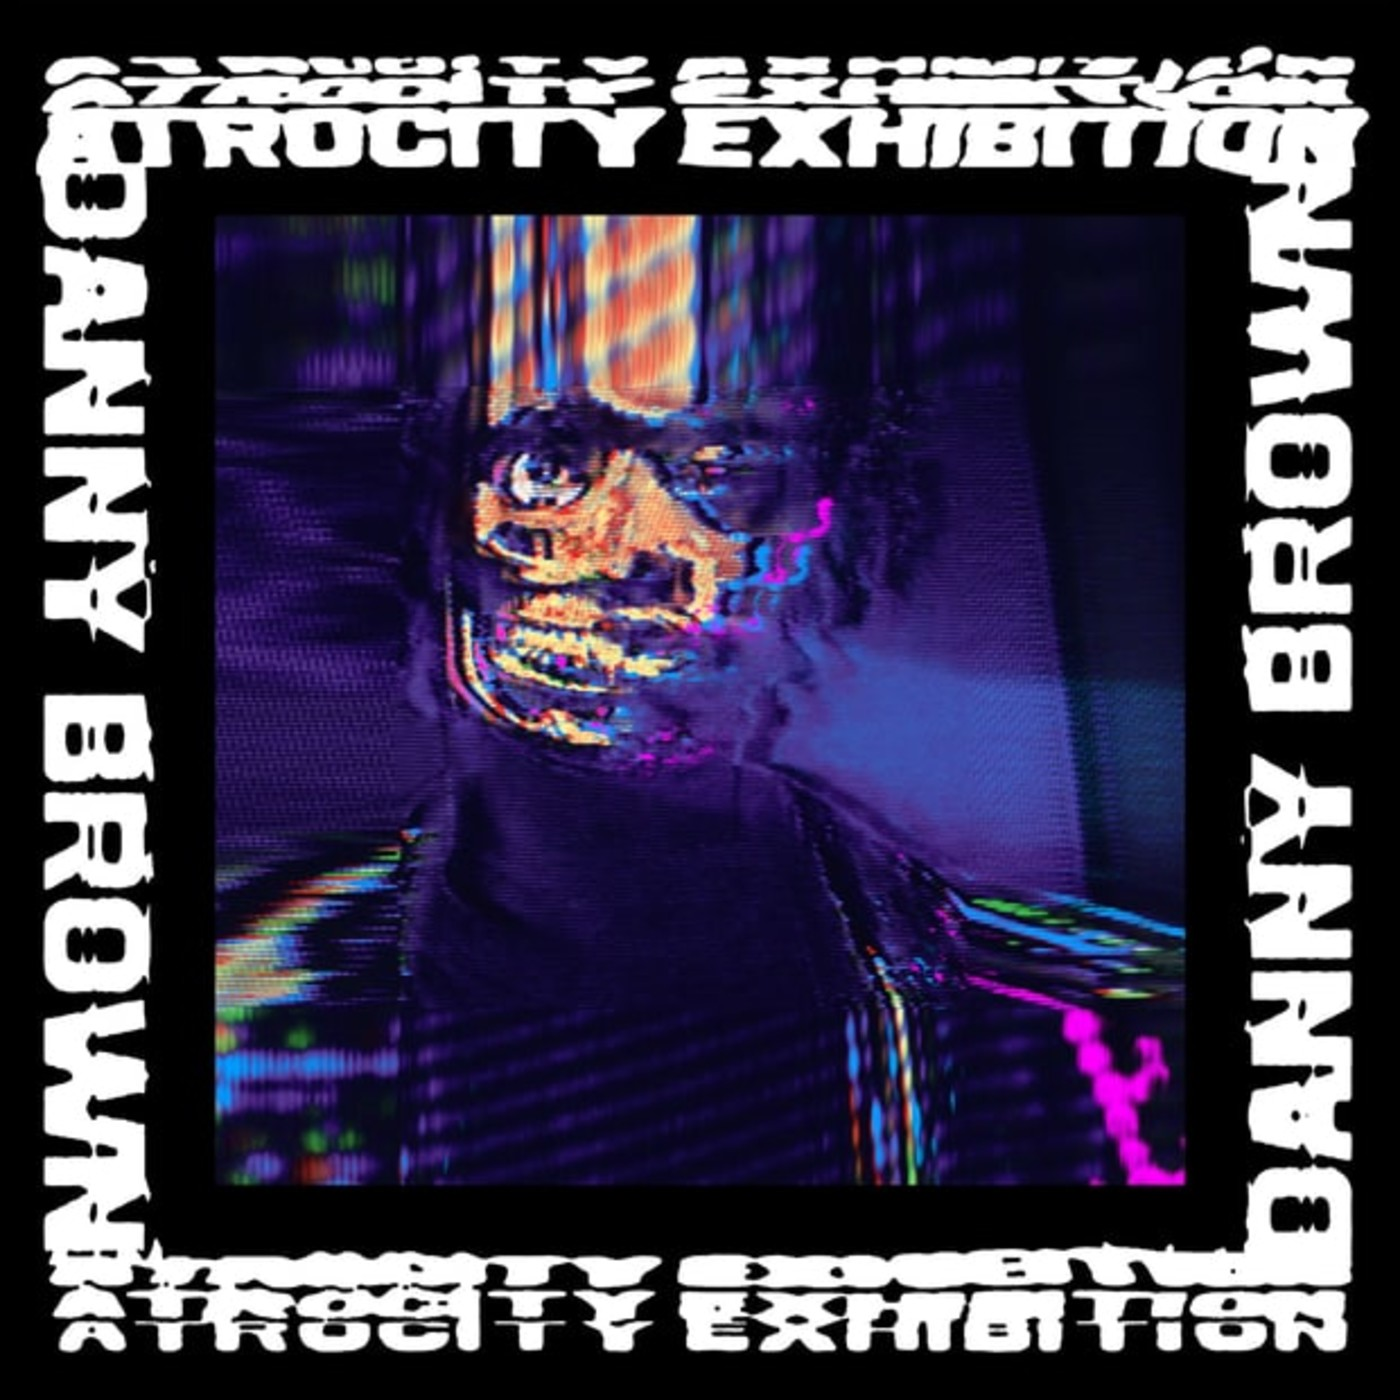 Danny Brown 'Atrocity Exhibition' album cover.